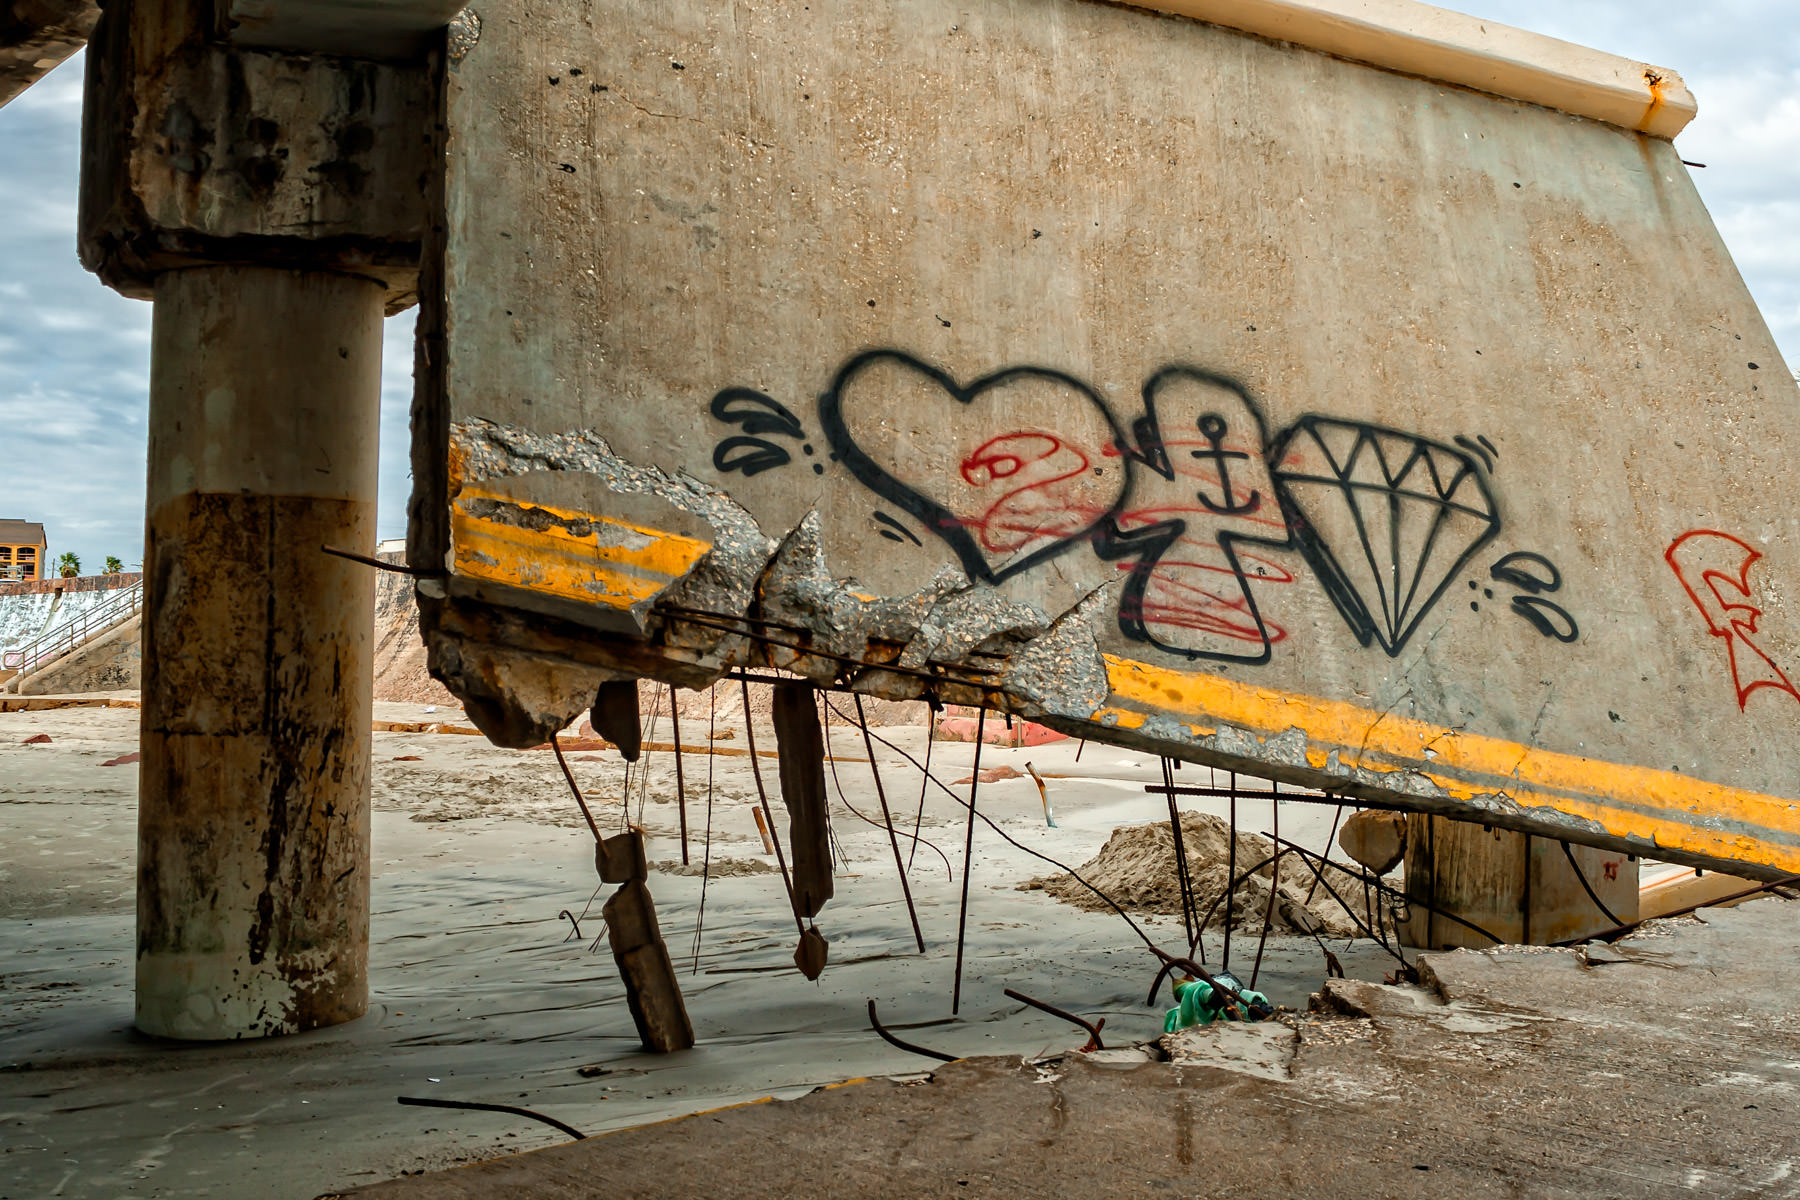 Graffiti on a piece of the crumbled, Hurricane Ike-damaged pier that supports the abandoned Flagship Hotel in Galveston, Texas.